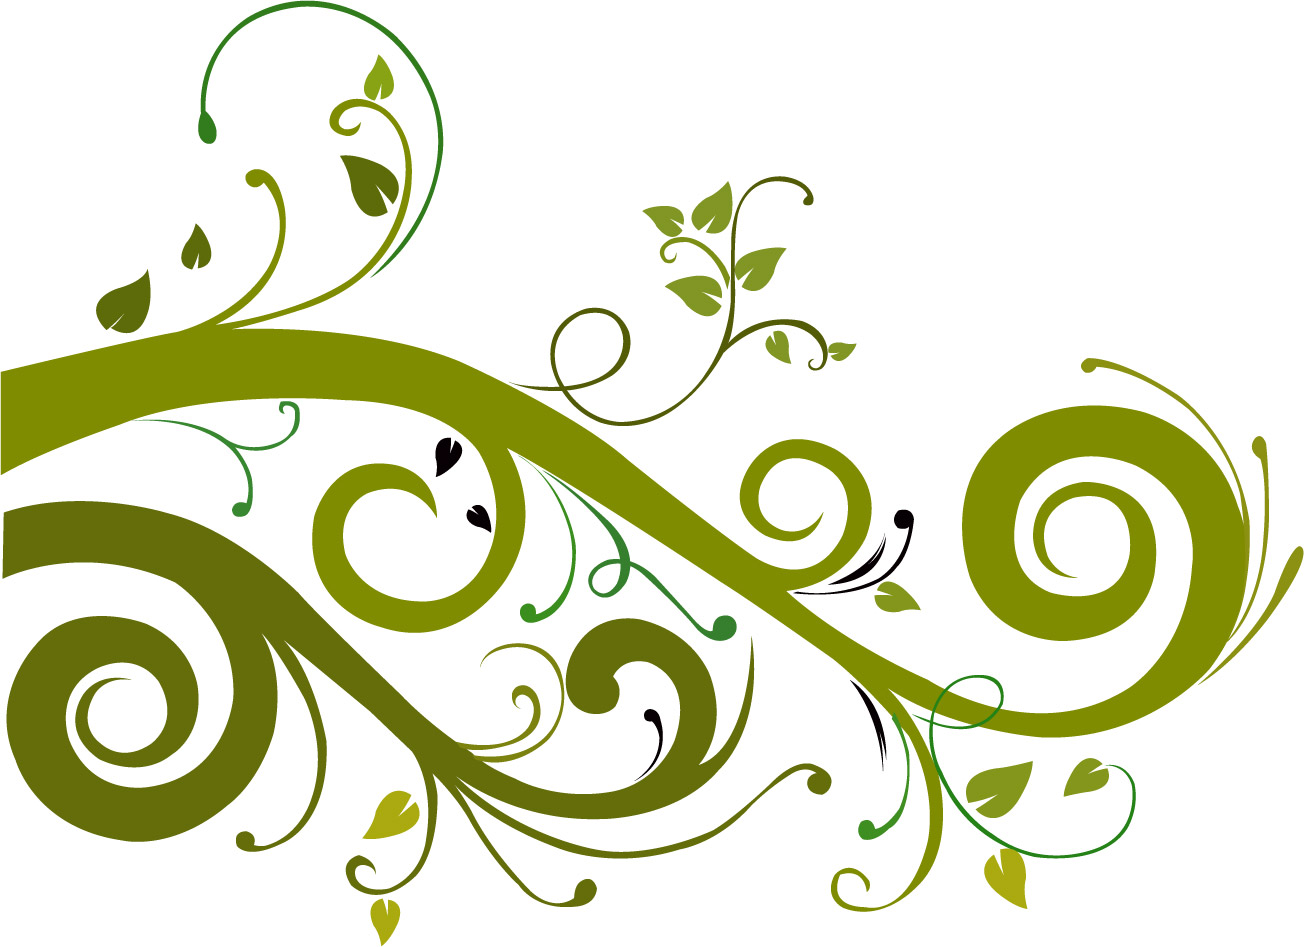 Flower Vector Graphic 7554 Hd Wallpapers in Vector n Designs - Floral PNG HD